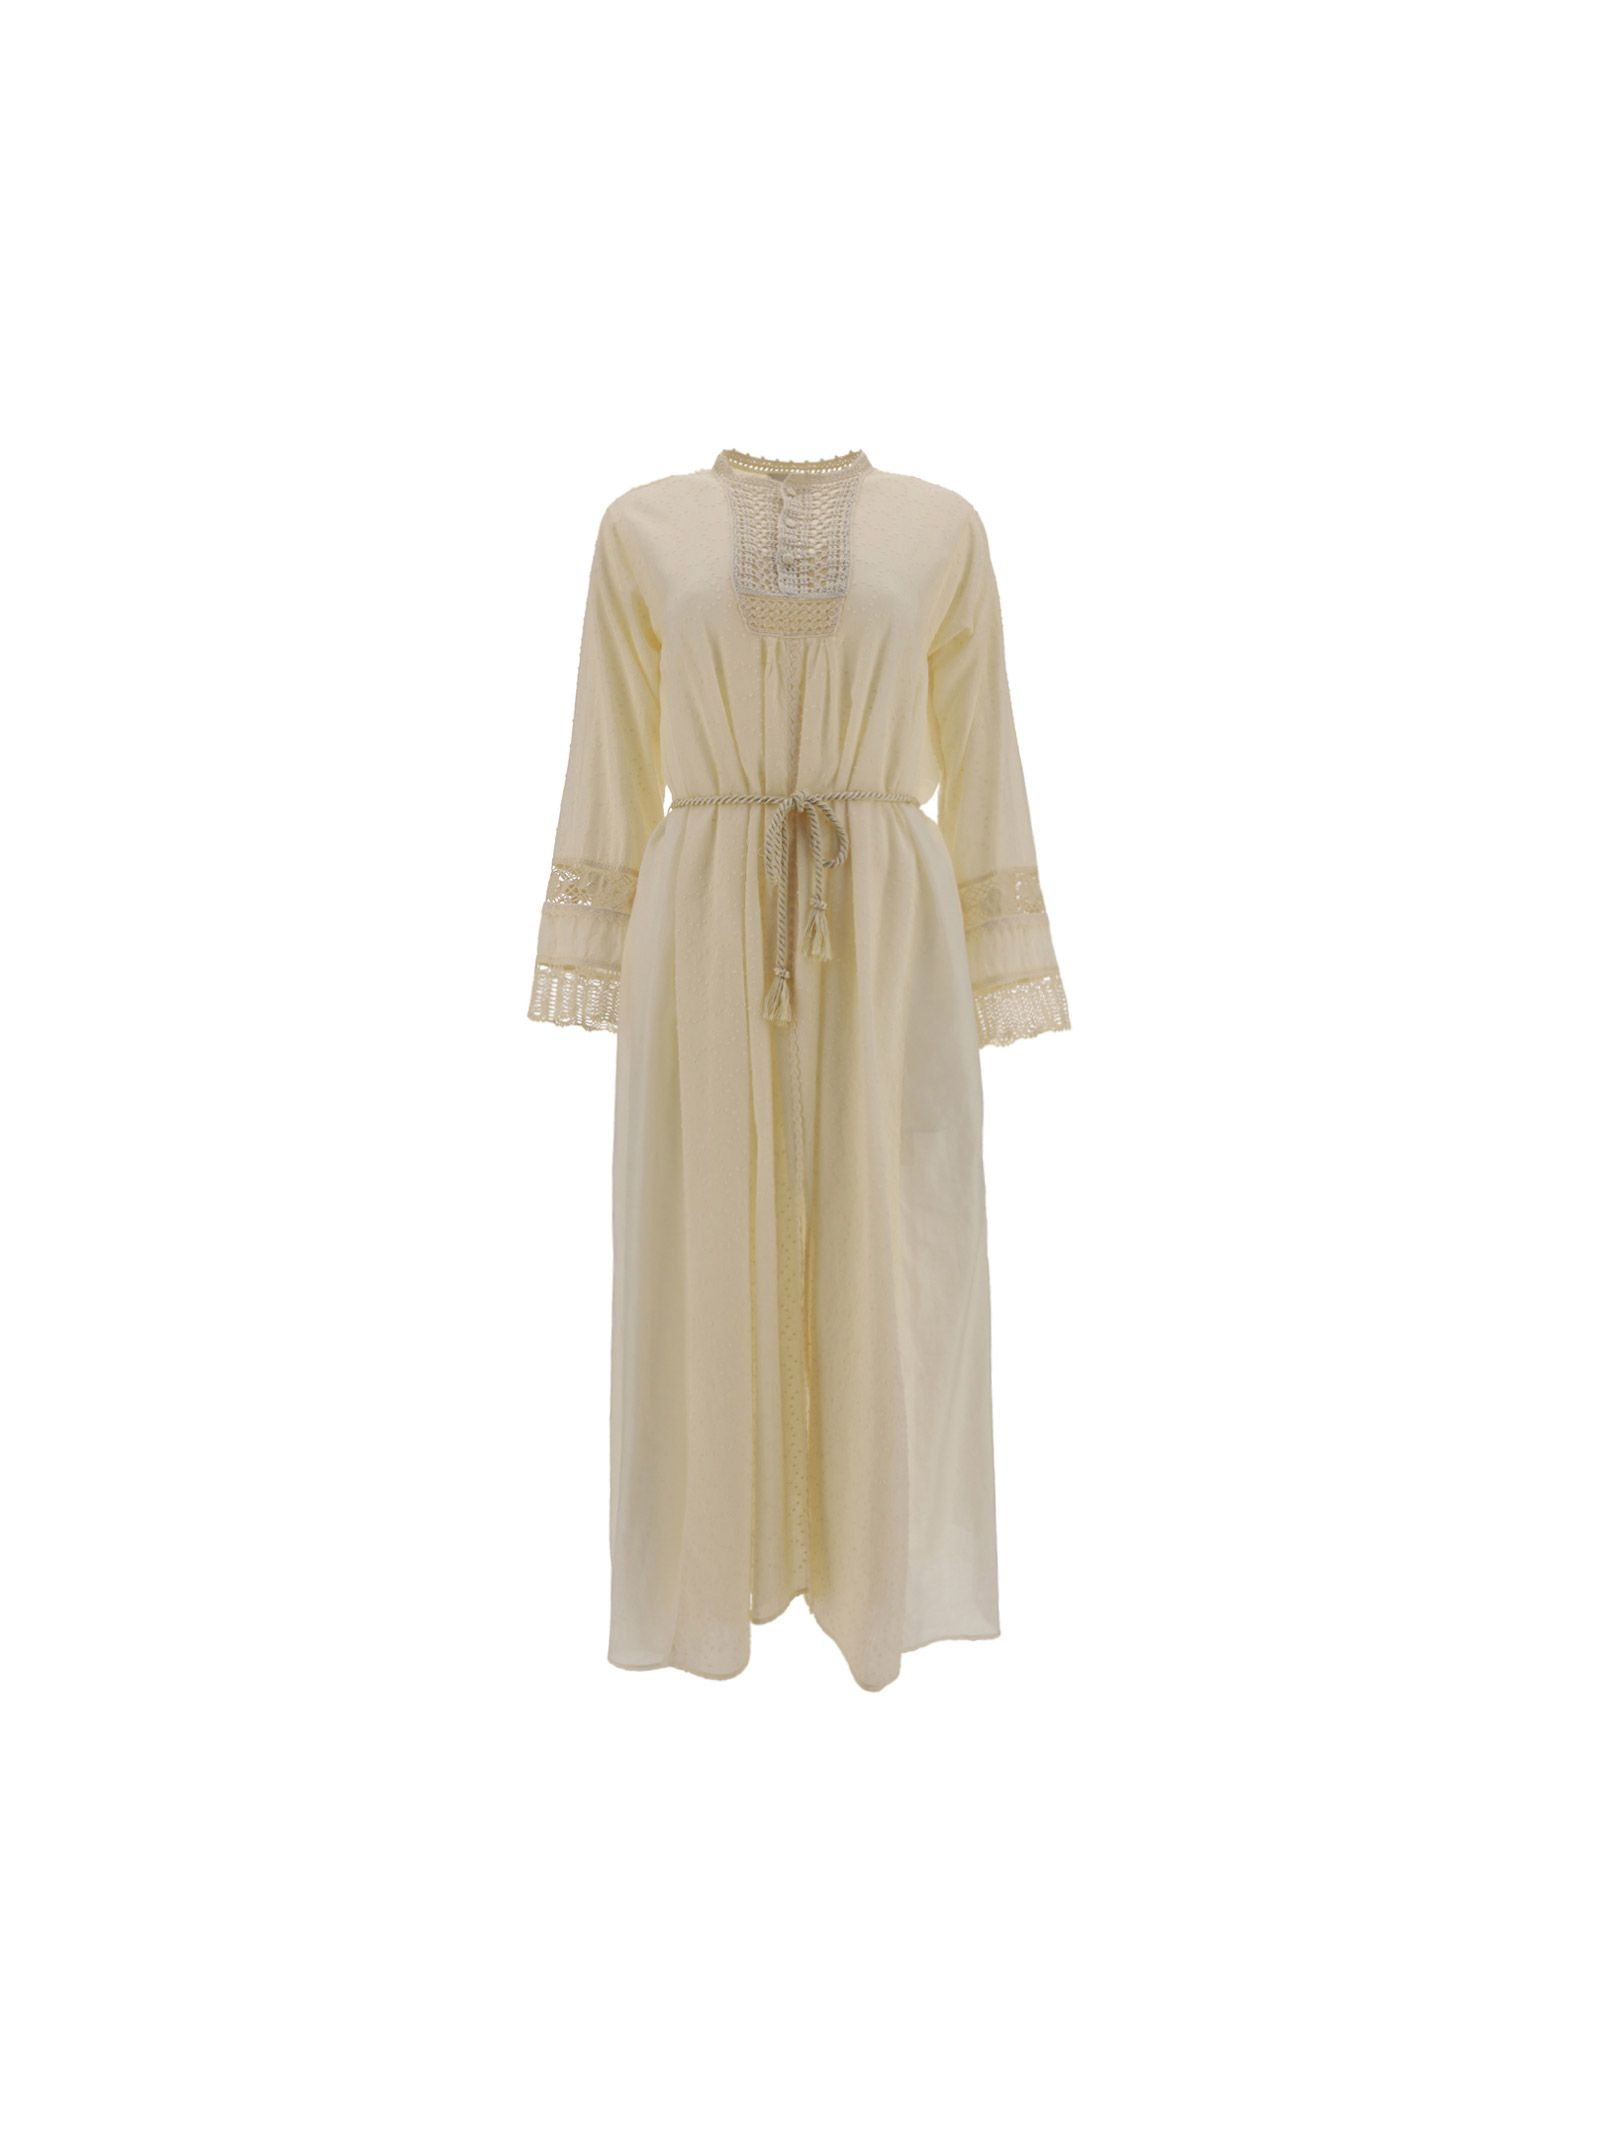 Forte Forte FORTE FORTE WOMEN'S 8084MYDRESSIVORY BEIGE OTHER MATERIALS DRESS